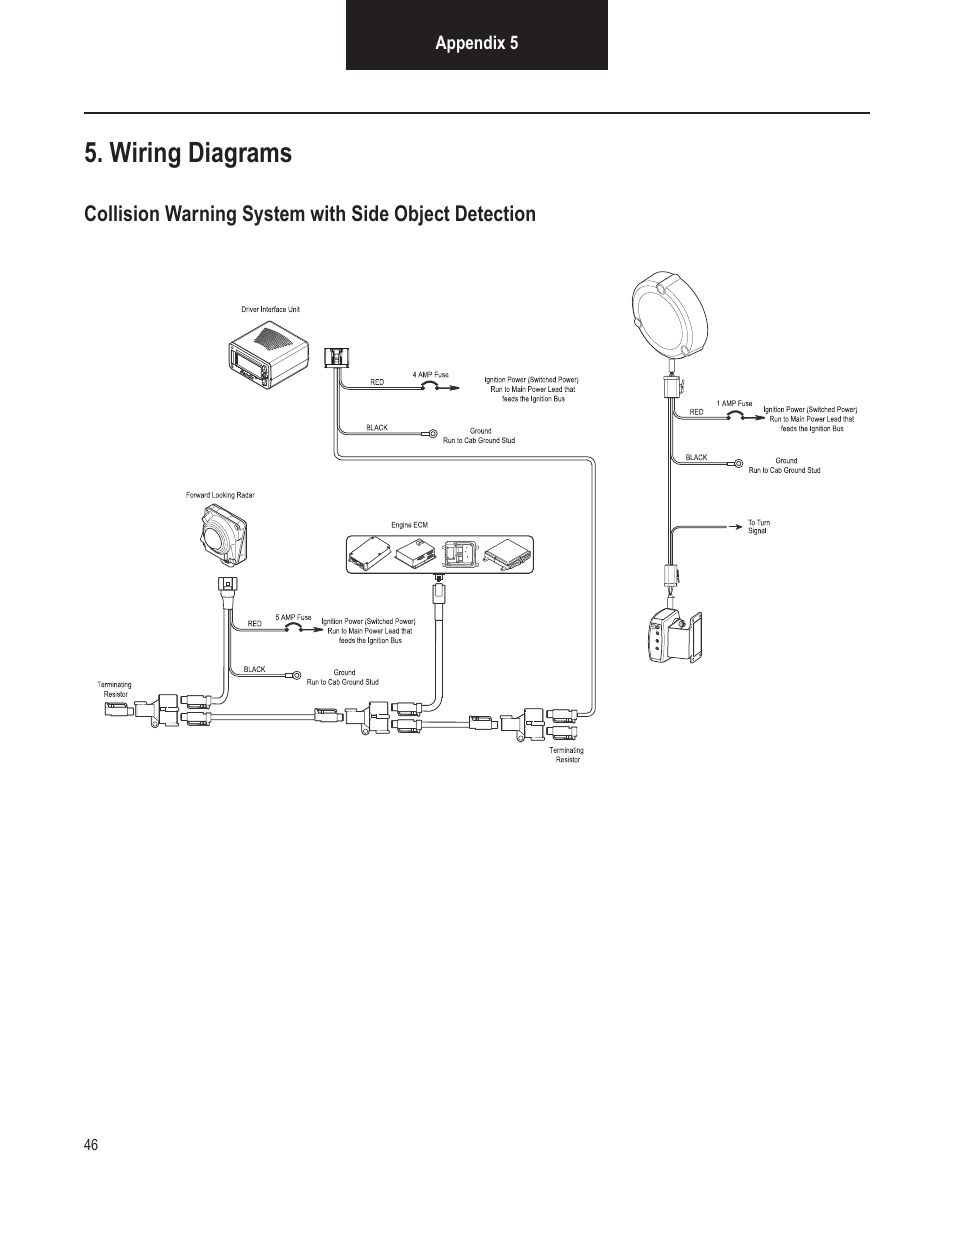 hight resolution of wiring diagrams bendix commercial vehicle systems vorad vs 400 installation notes user manual page 48 54